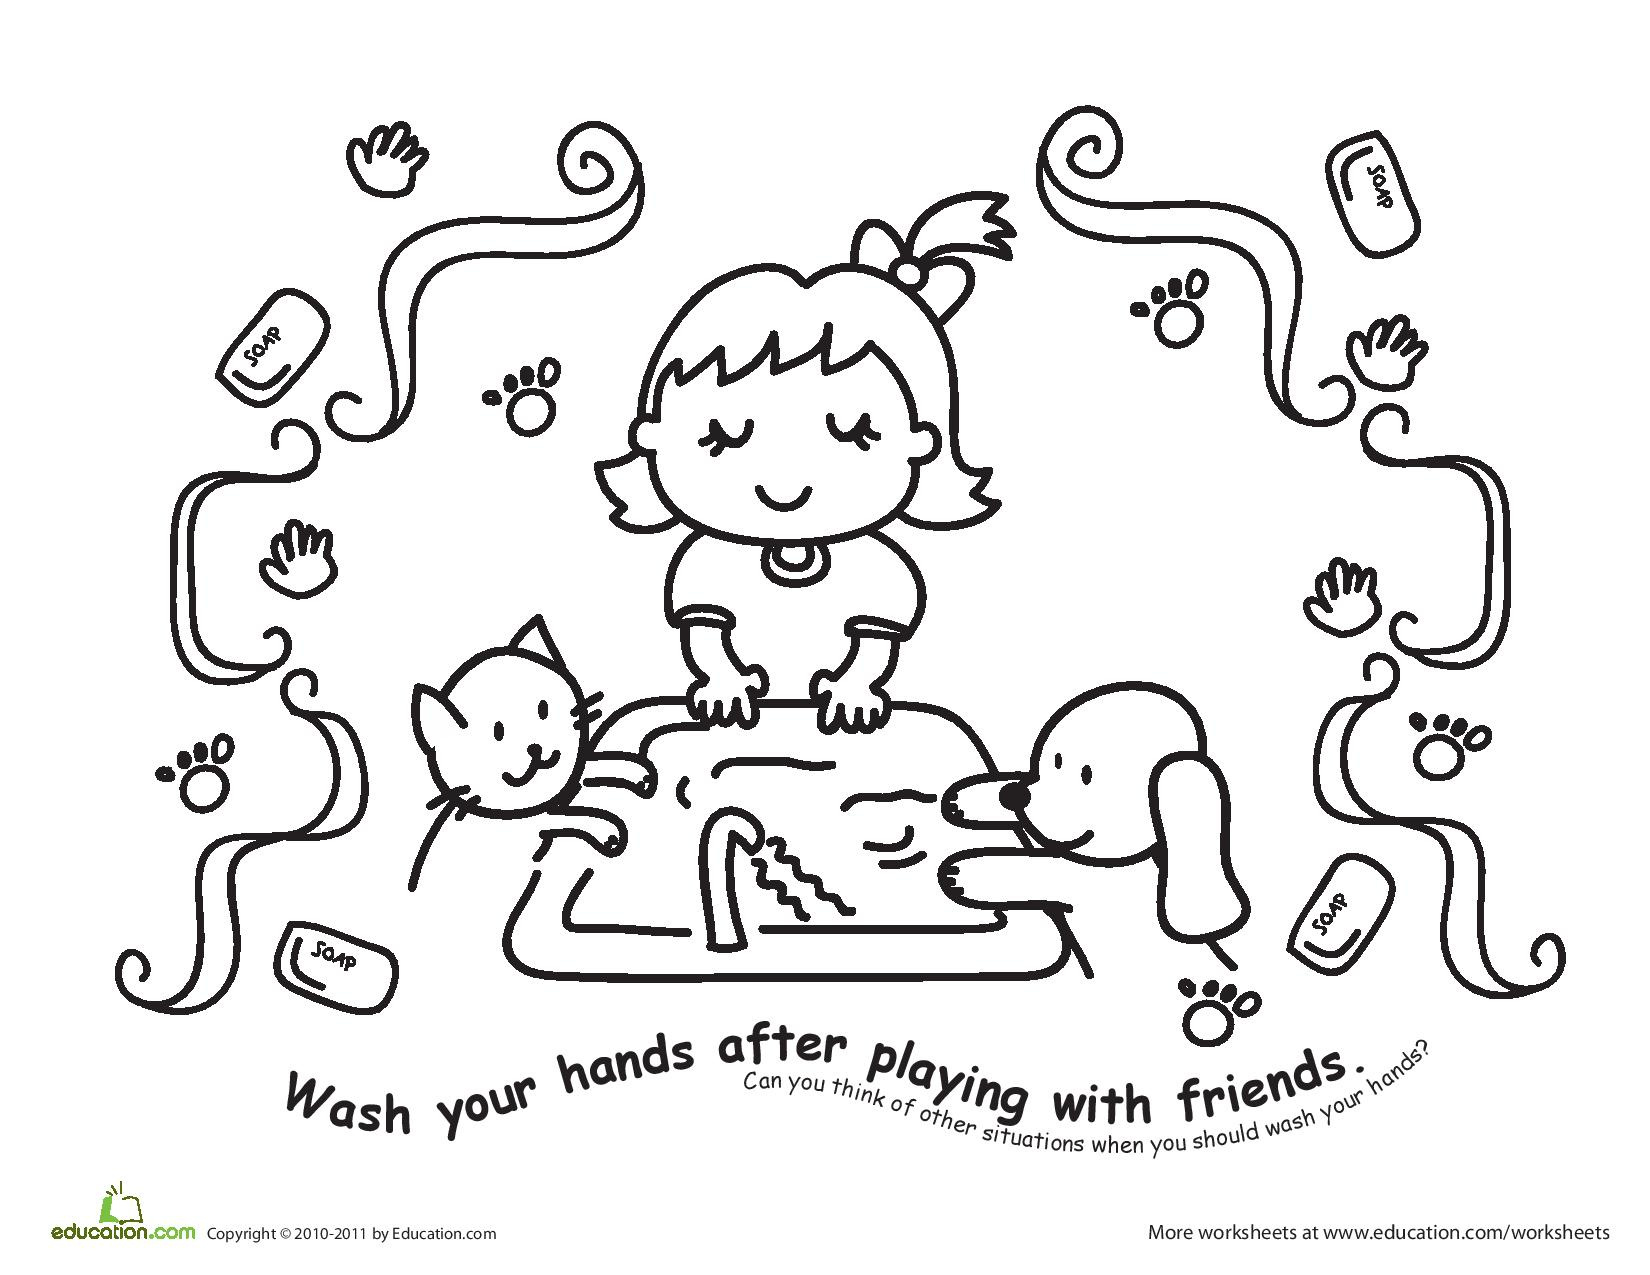 Food Safety Coloring Sheets Day Care - Worksheet & Coloring Pages